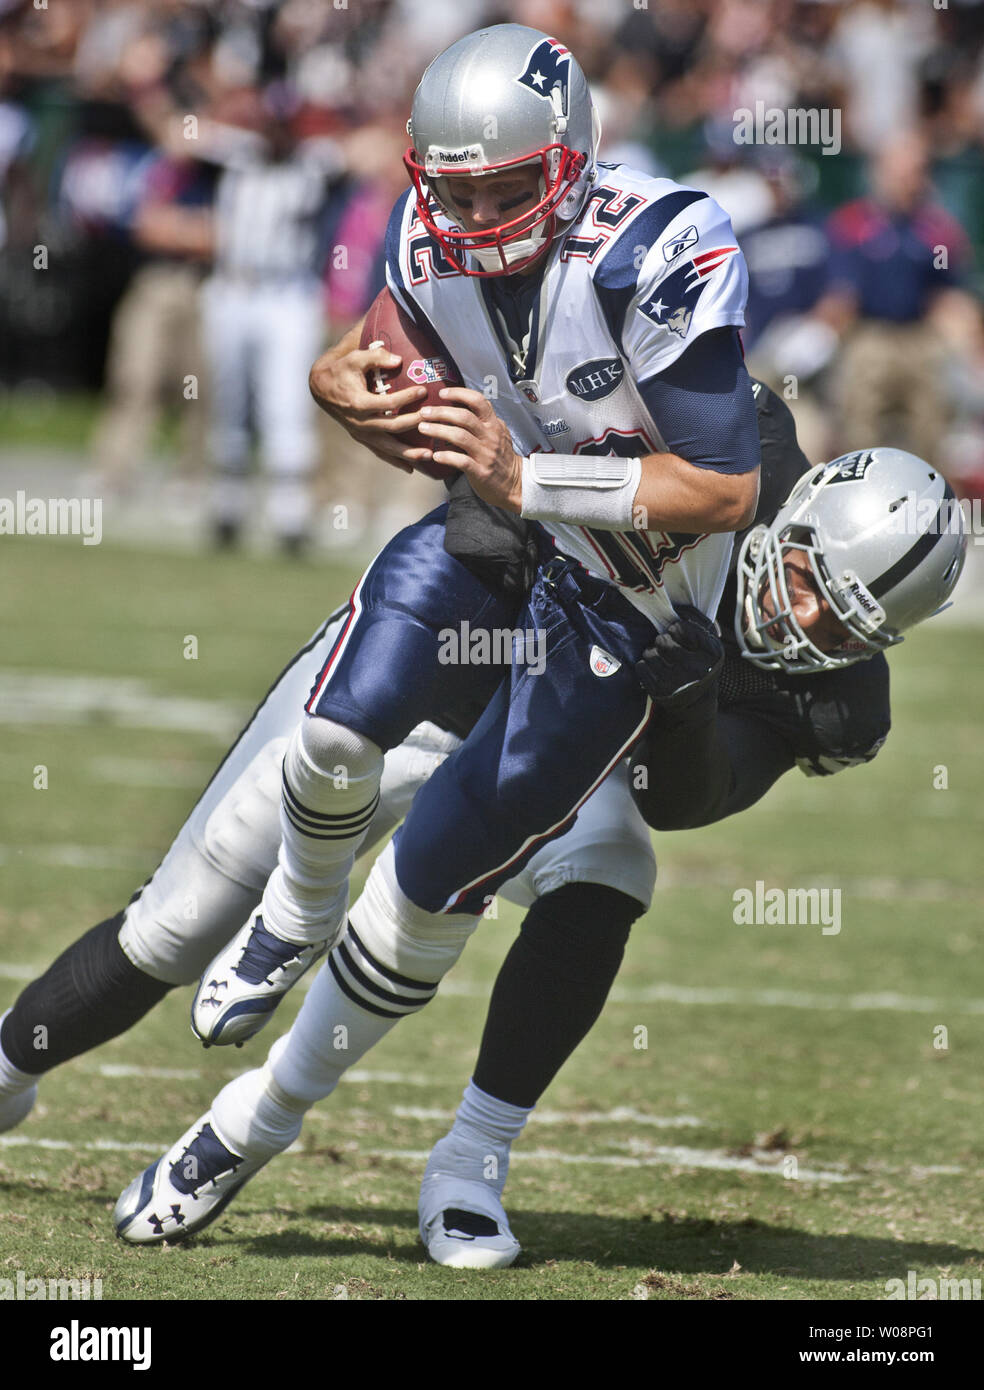 New England Patriots QB Tom Brady (12) is sacked by Oakland Raiders Richard Seymour in the first quarter at the Coliseum in Oakland, California on October 2, 2011.  Seymour was flagged for unnecessary roughness on the play.      UPI/Terry Schmitt Stock Photo